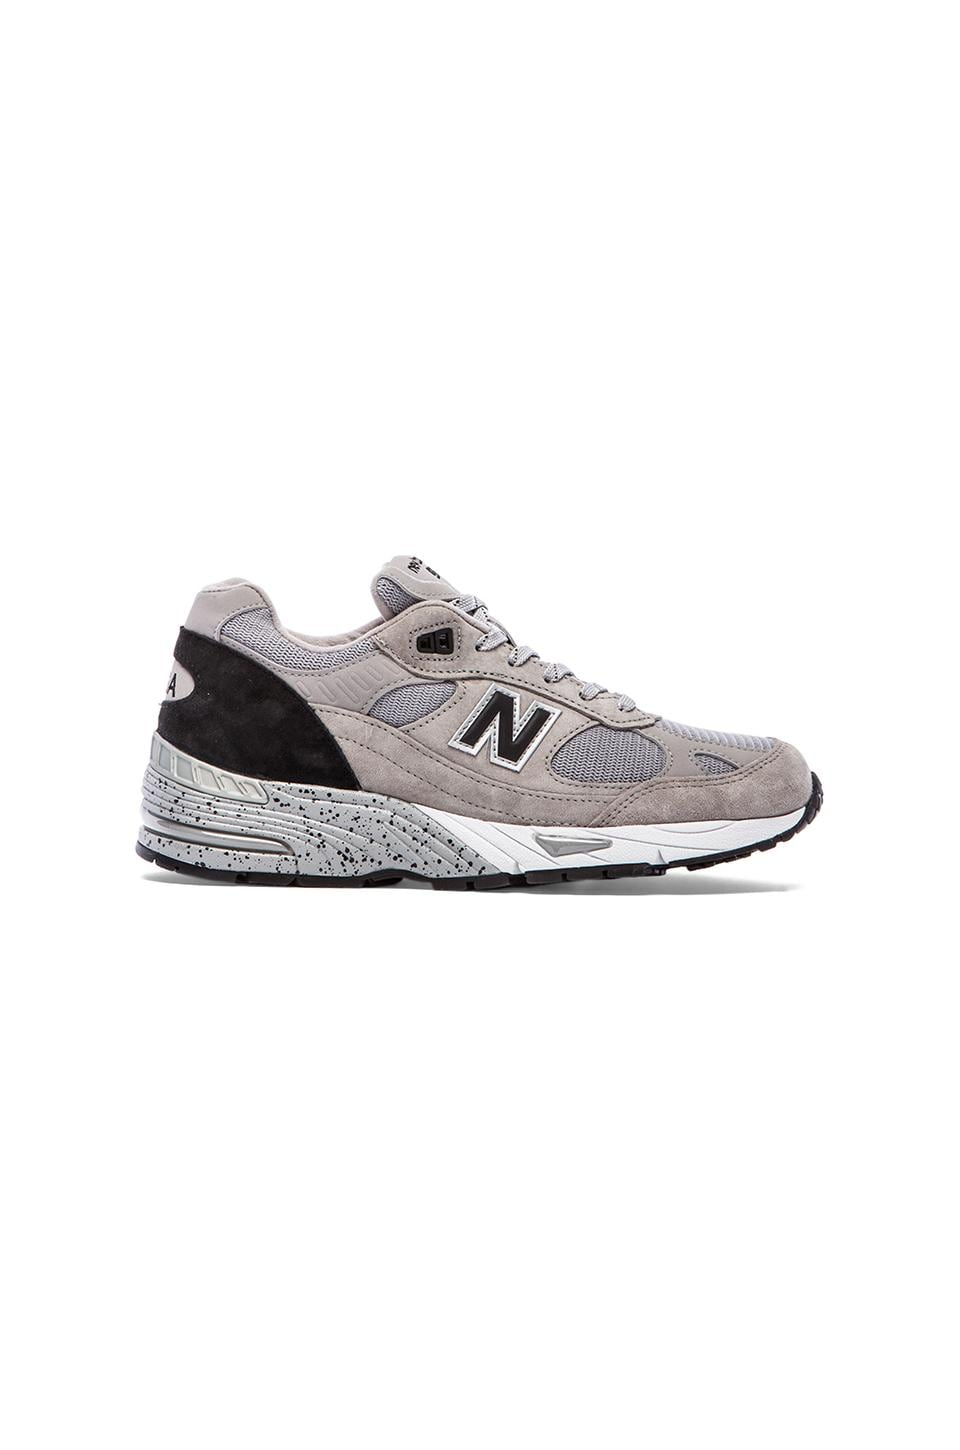 New Balance Made in USA M991 in Grey & Black